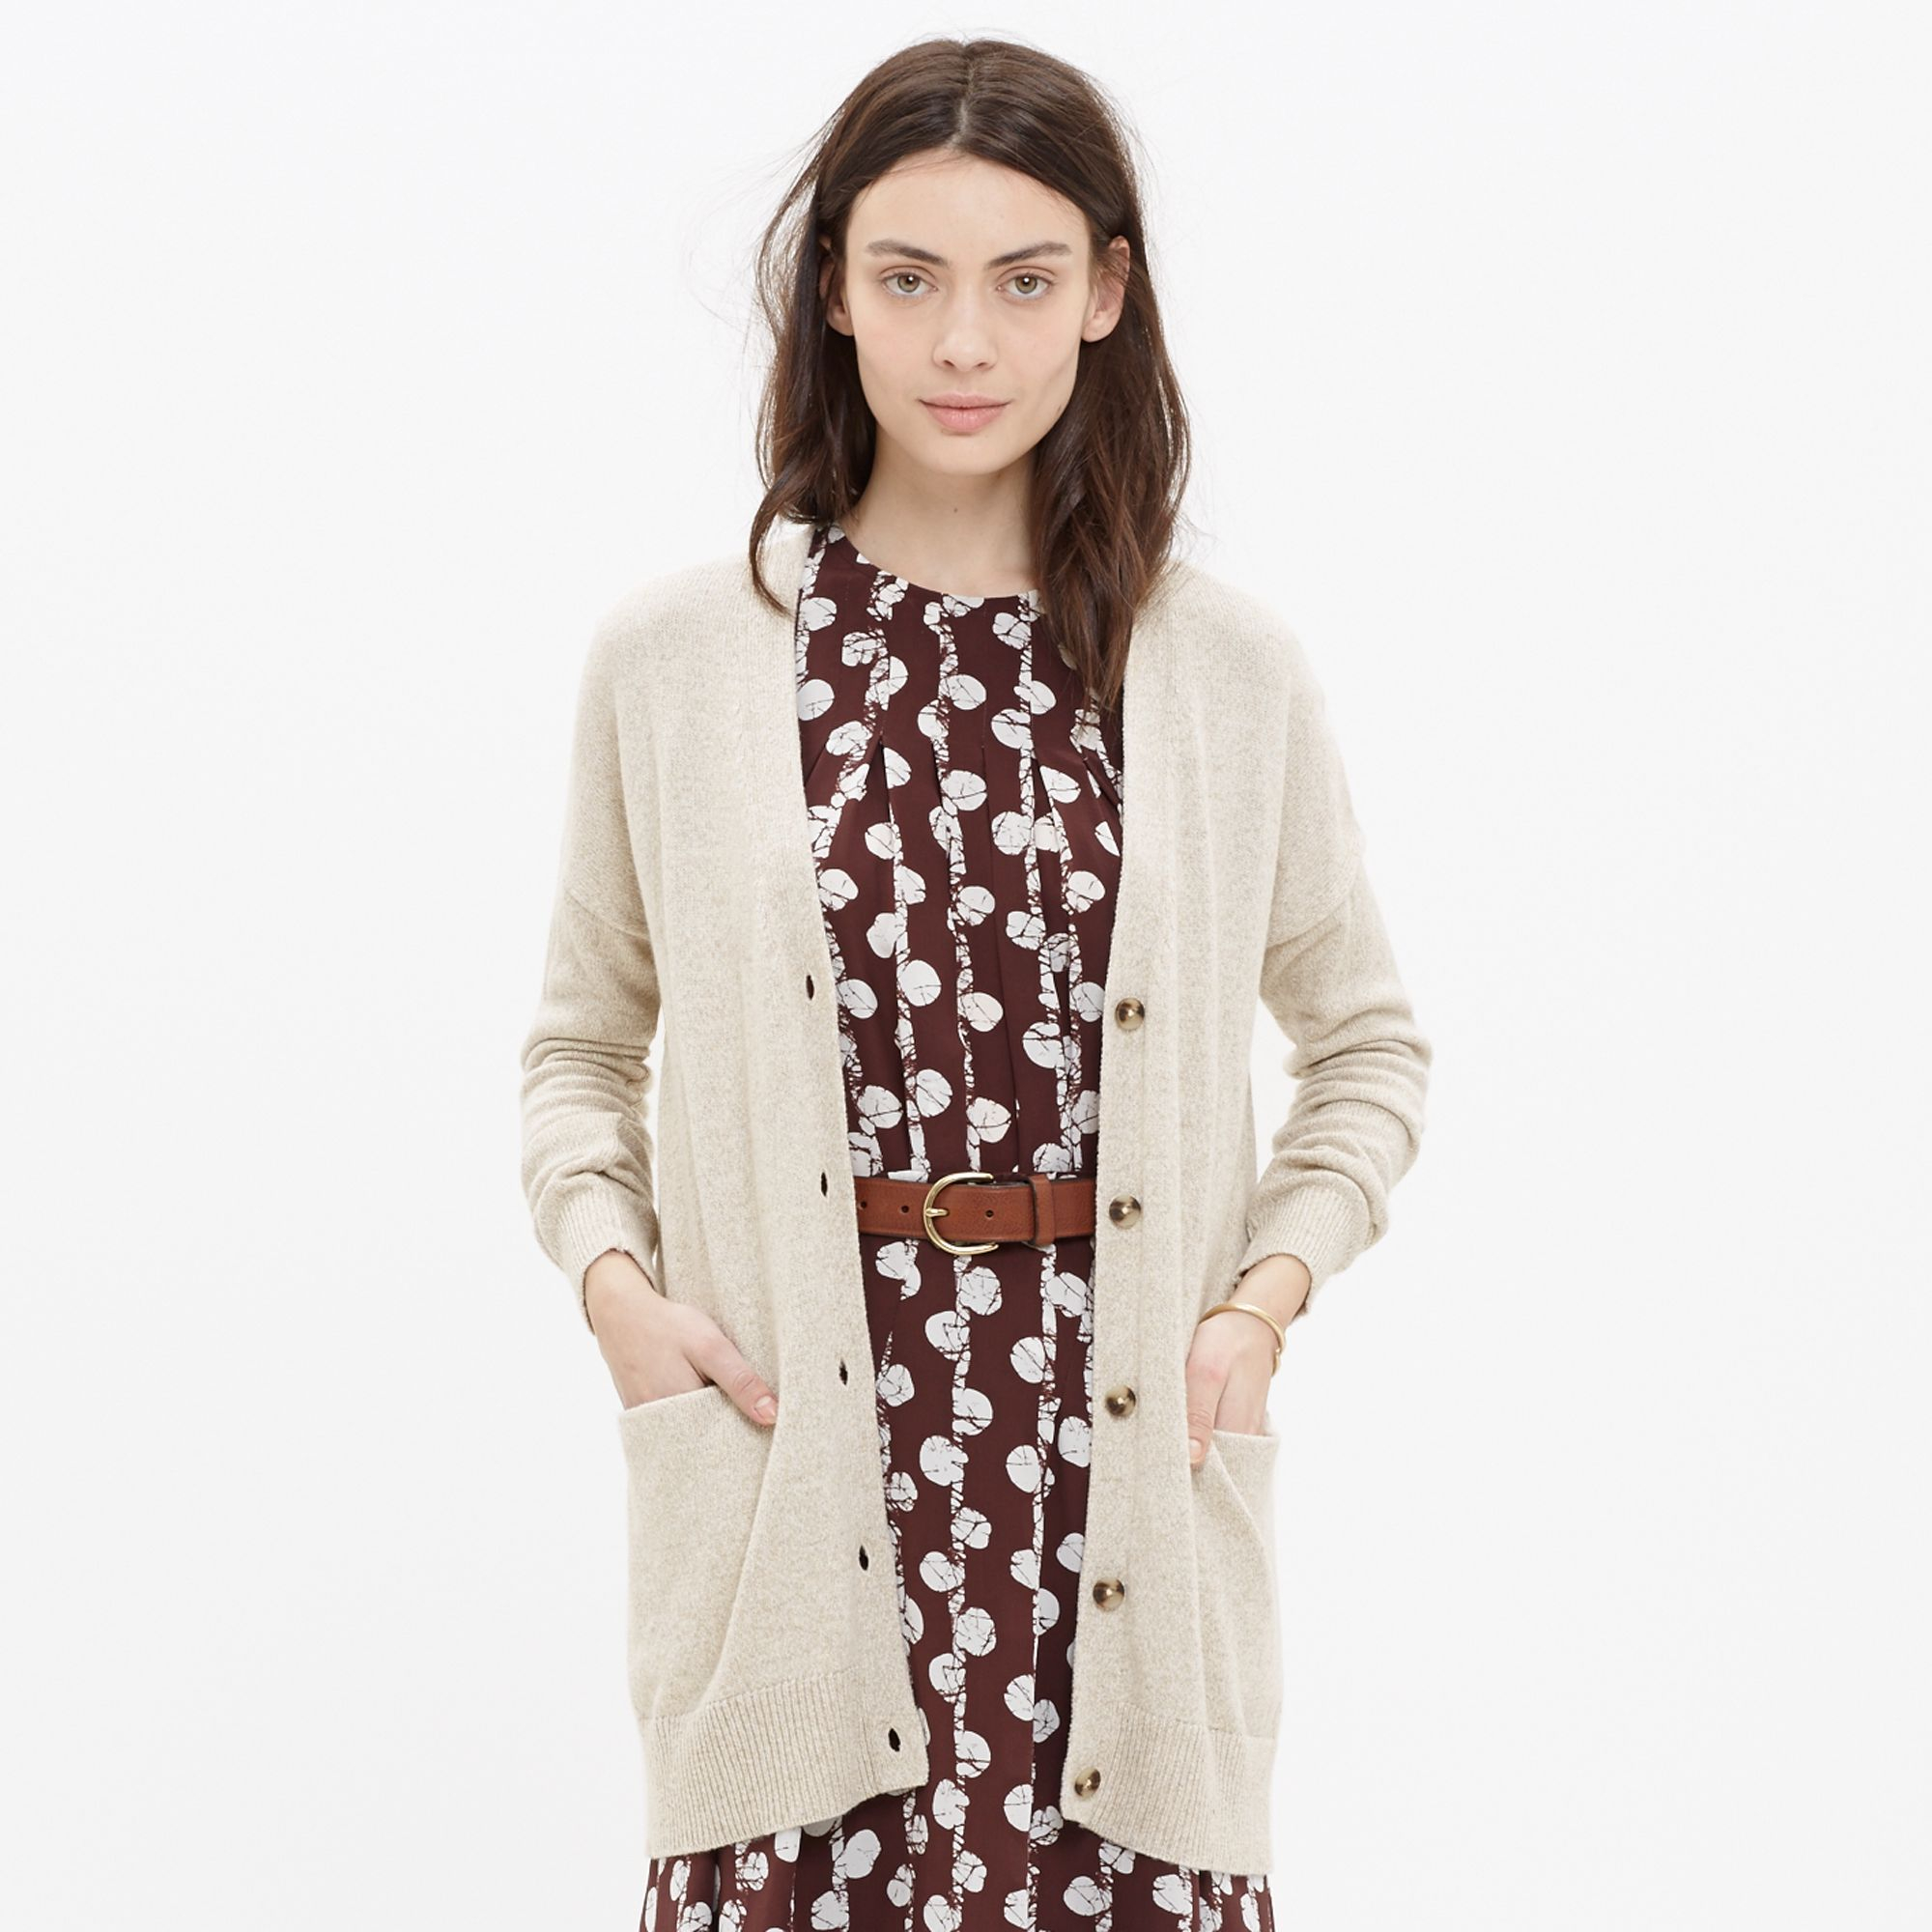 Madewell Long Cardigan Sweater in Natural | Lyst